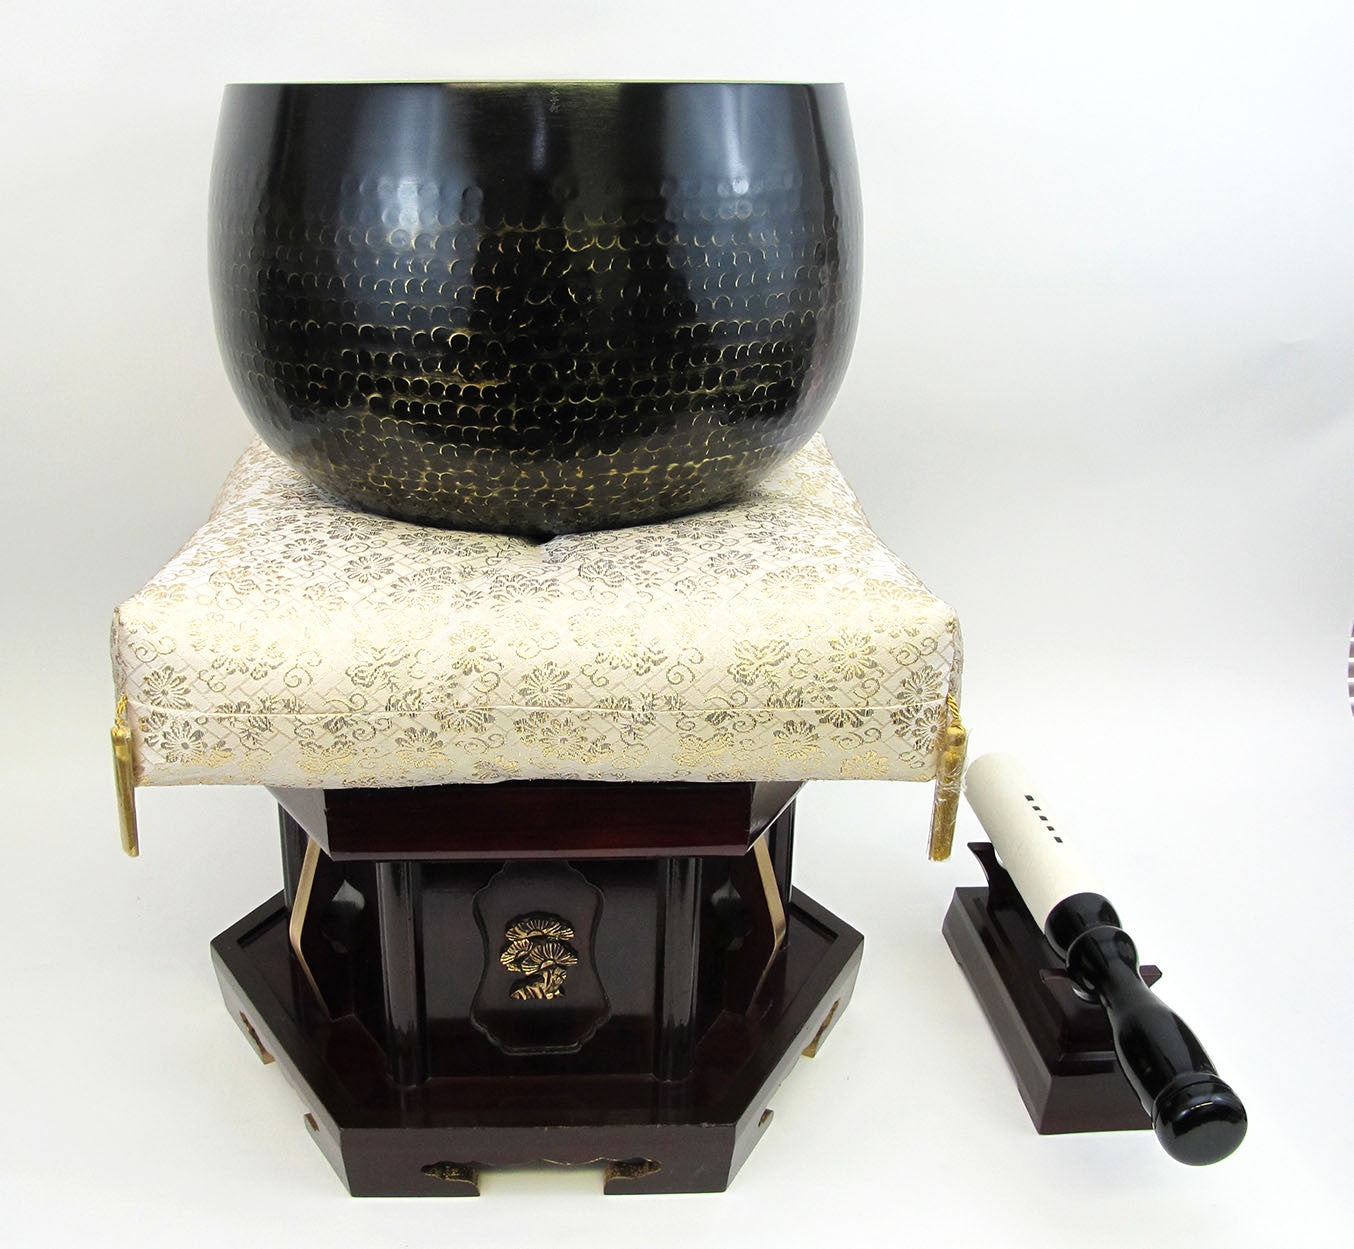 "No. 10 Bell (13"" Diameter) with Gold Cushion with Cherry Wood Base"